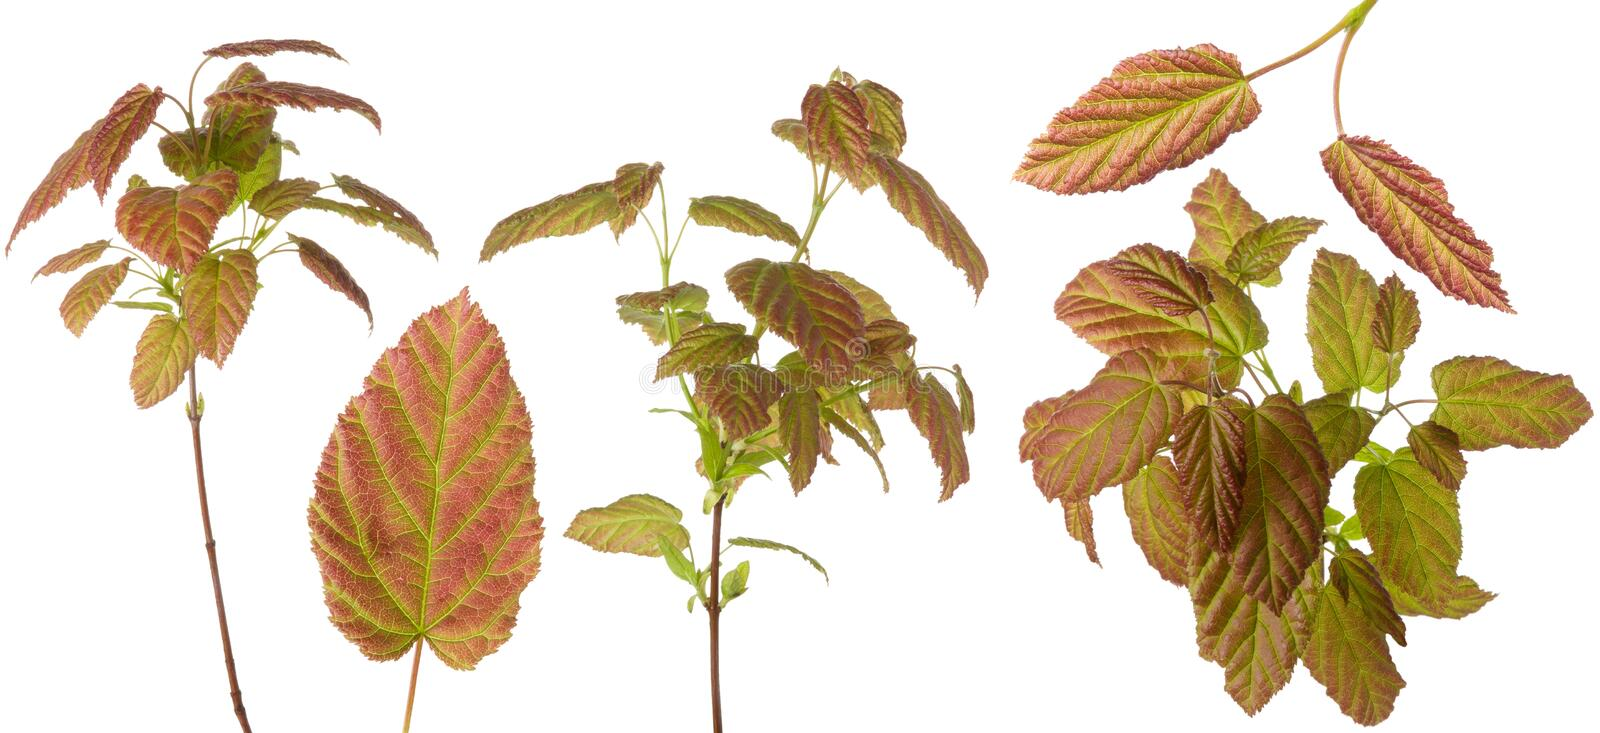 Red green multicolor plant leaves on stem and single leaf set for floral design isolated on white background stock photo